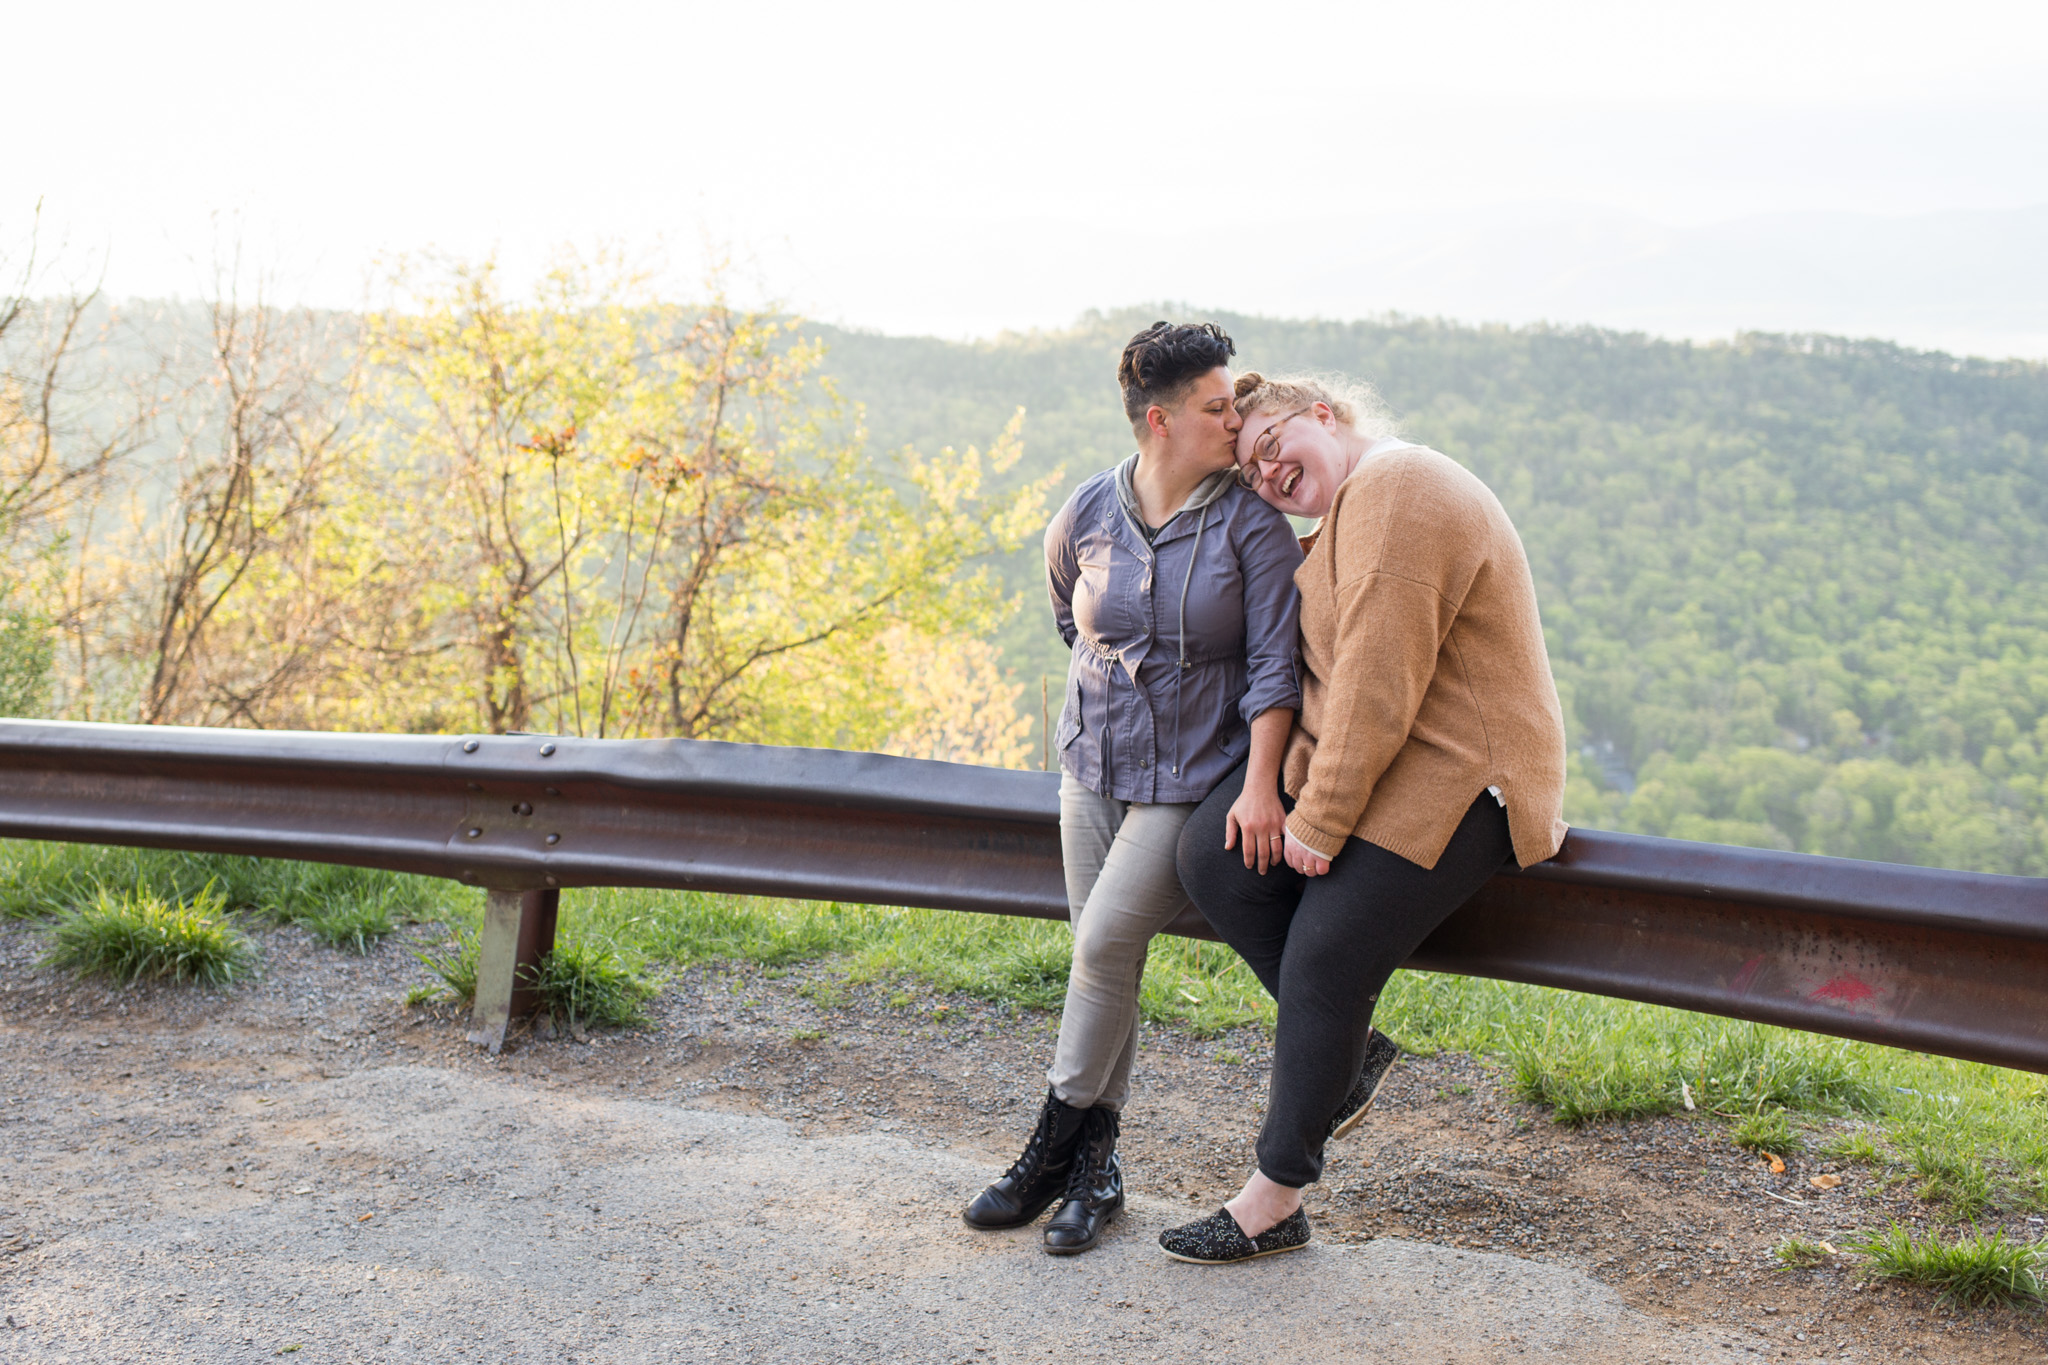 LightCreative_201904_AlexanBecky_Raleigh_Proposal_Photography_039_blog.jpg